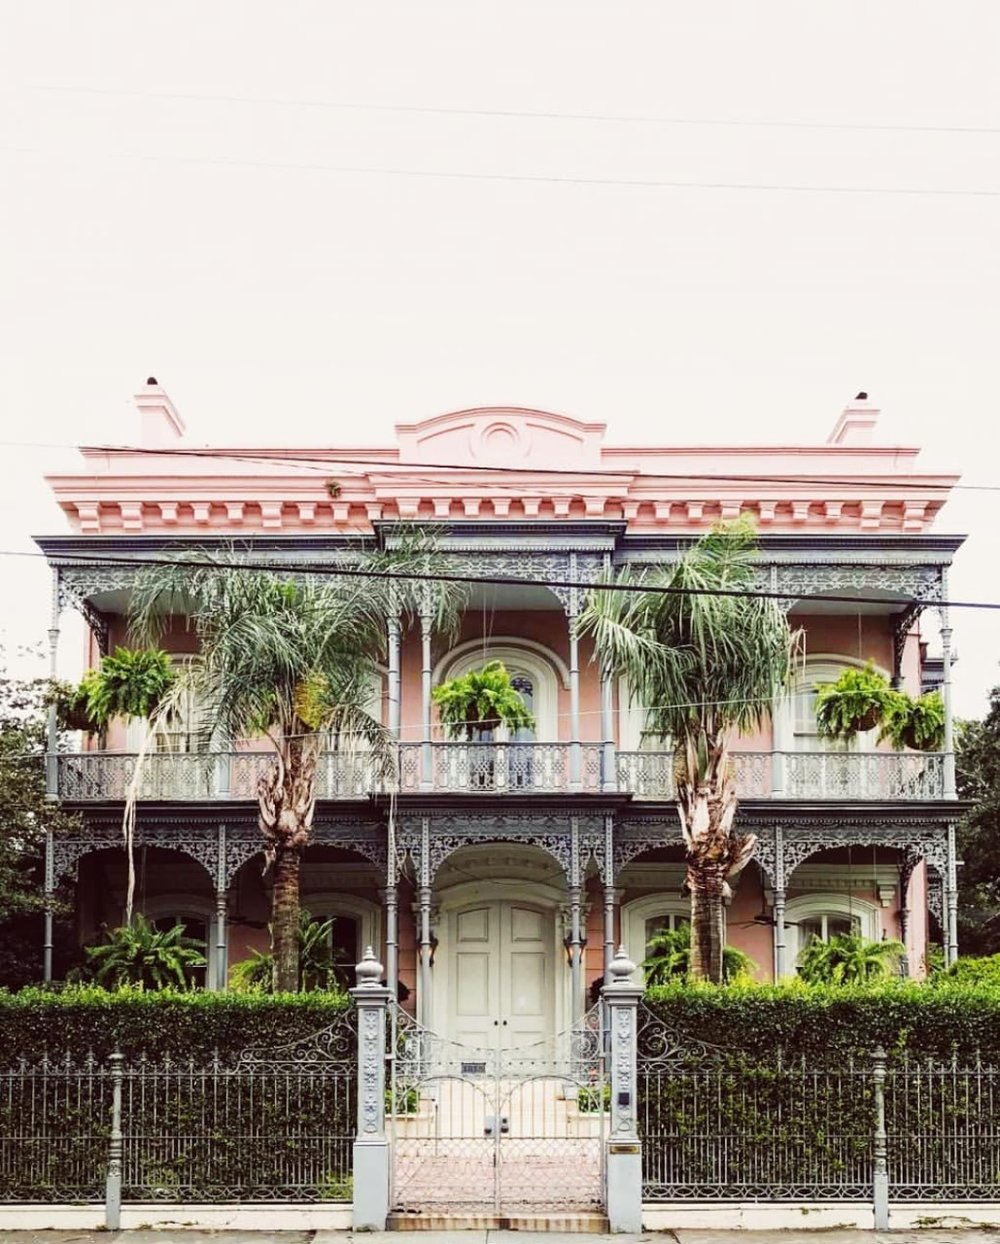 LOWER GARDEN AND GARDEN DISTRICT: Not to be missed. Full of enormous and ornate homes like this one.